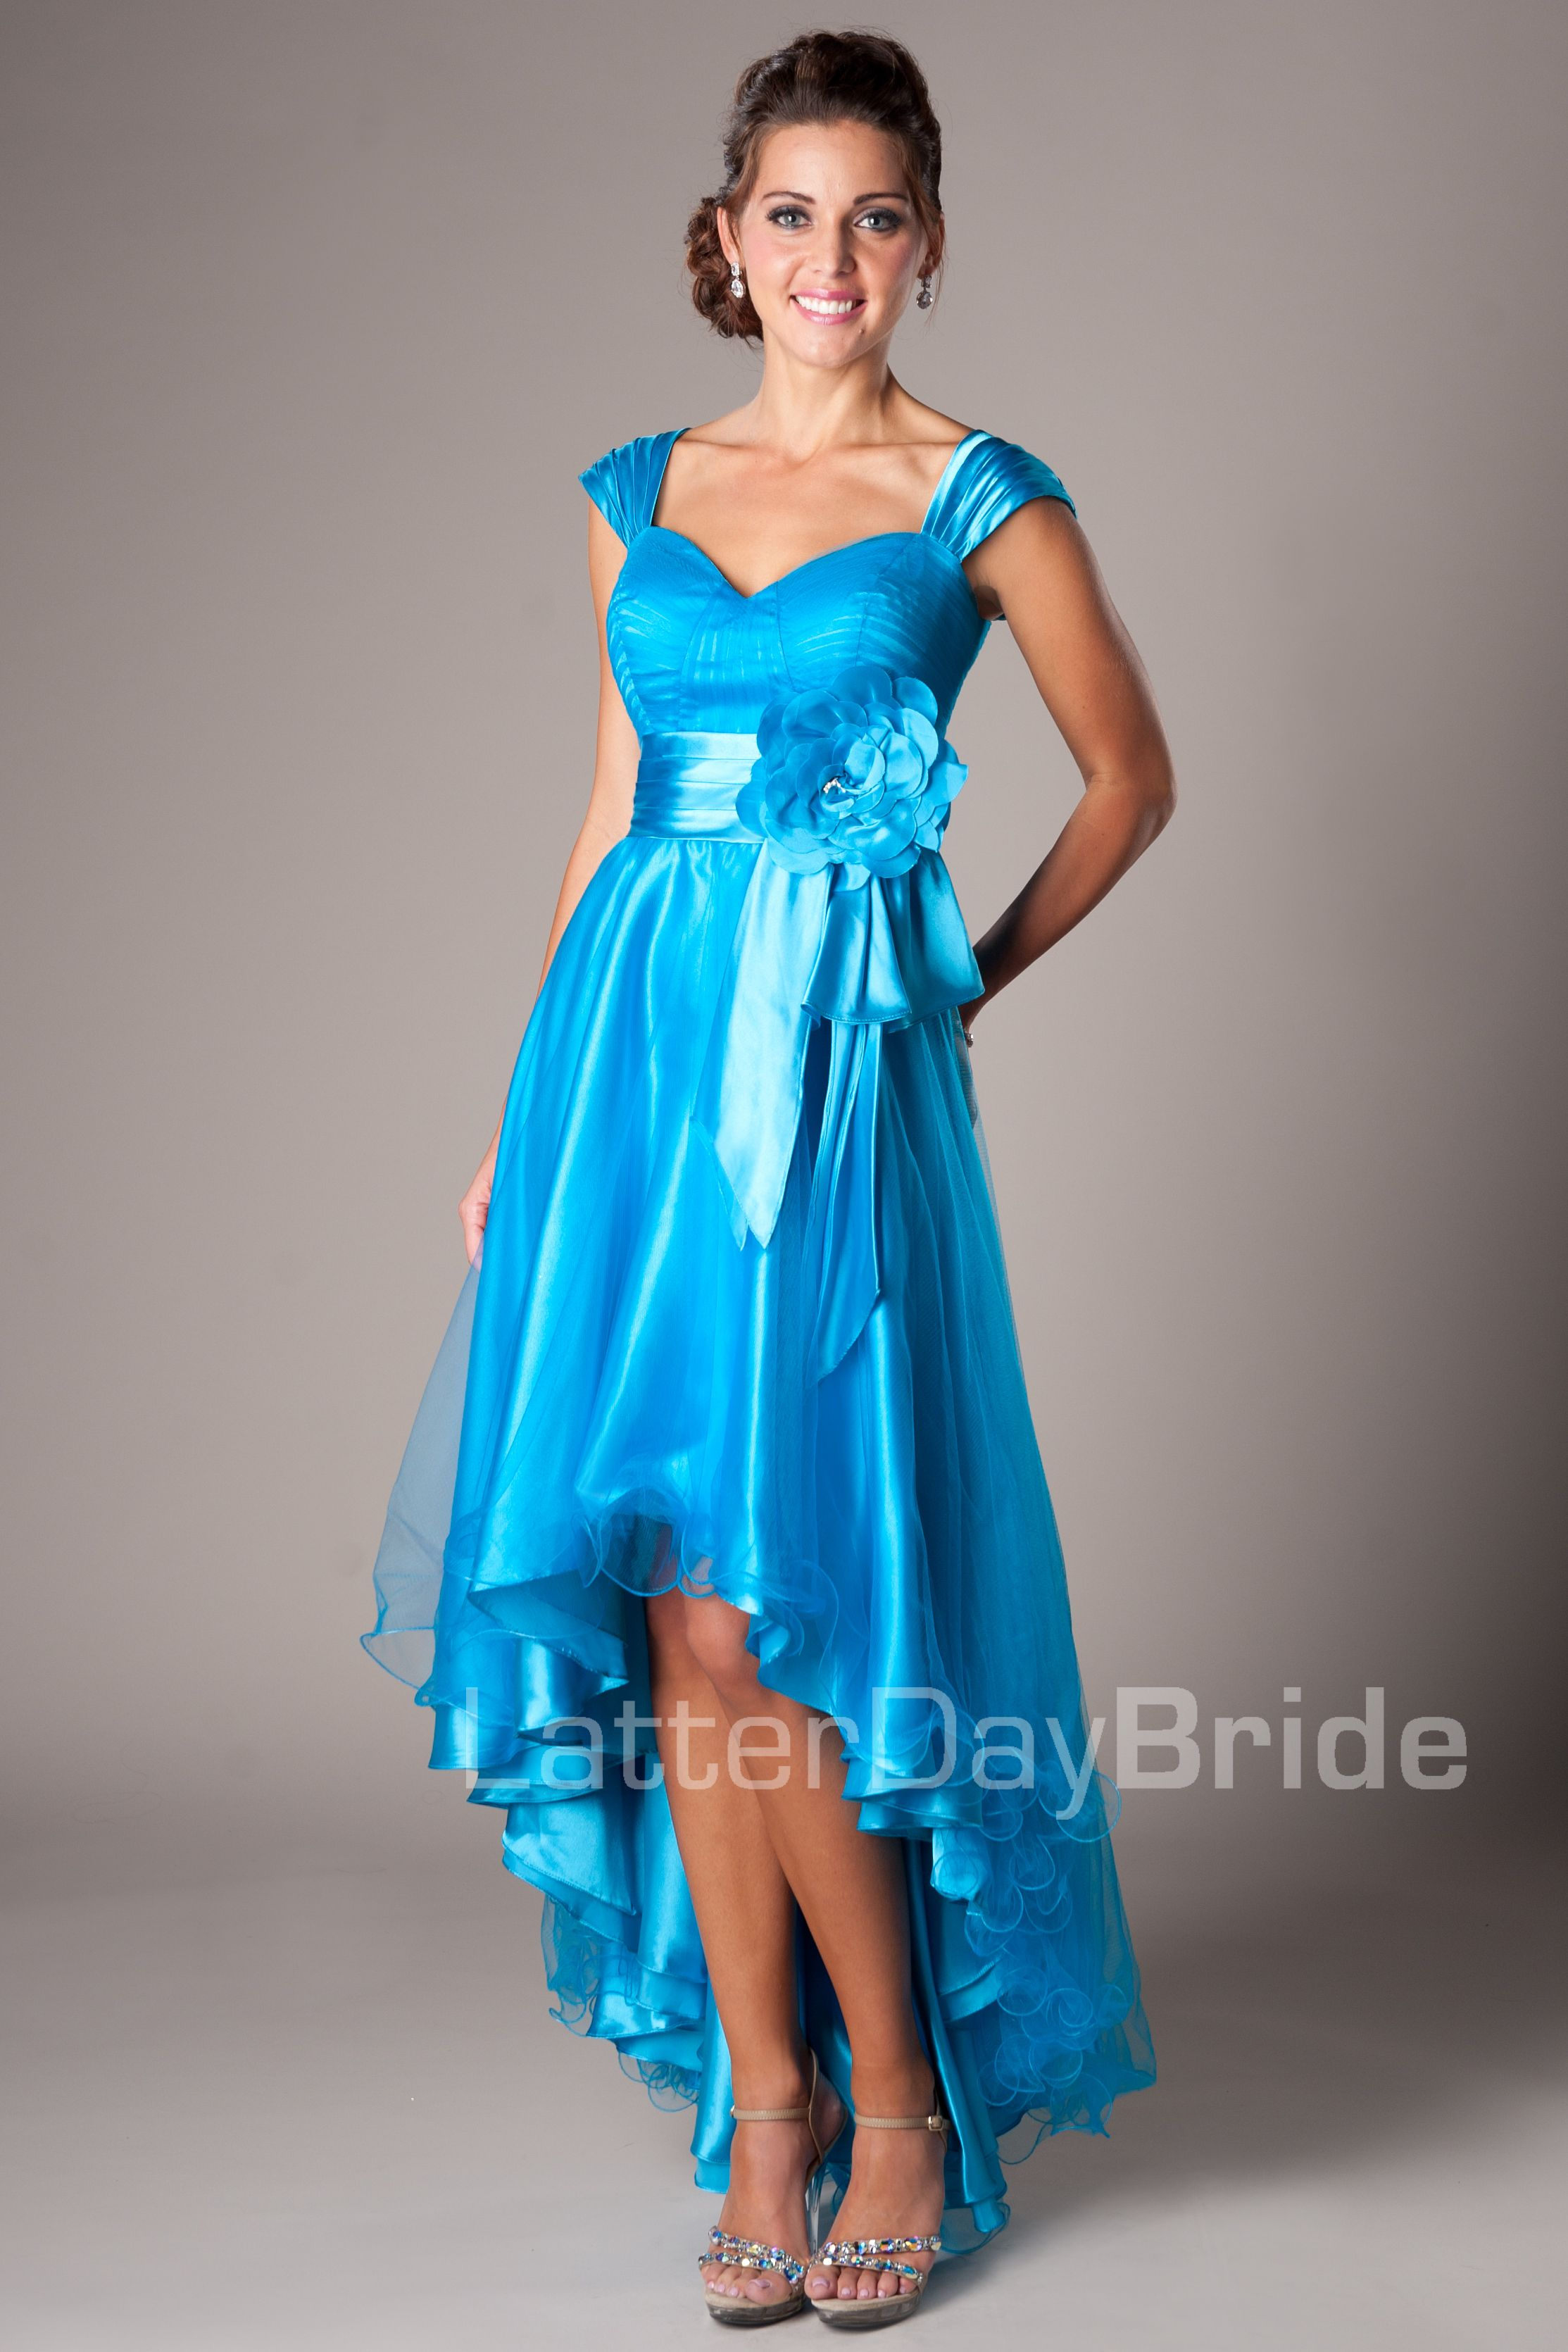 Summer -Modest Mormon LDS Prom Dress | Modest Prom Dresses ...